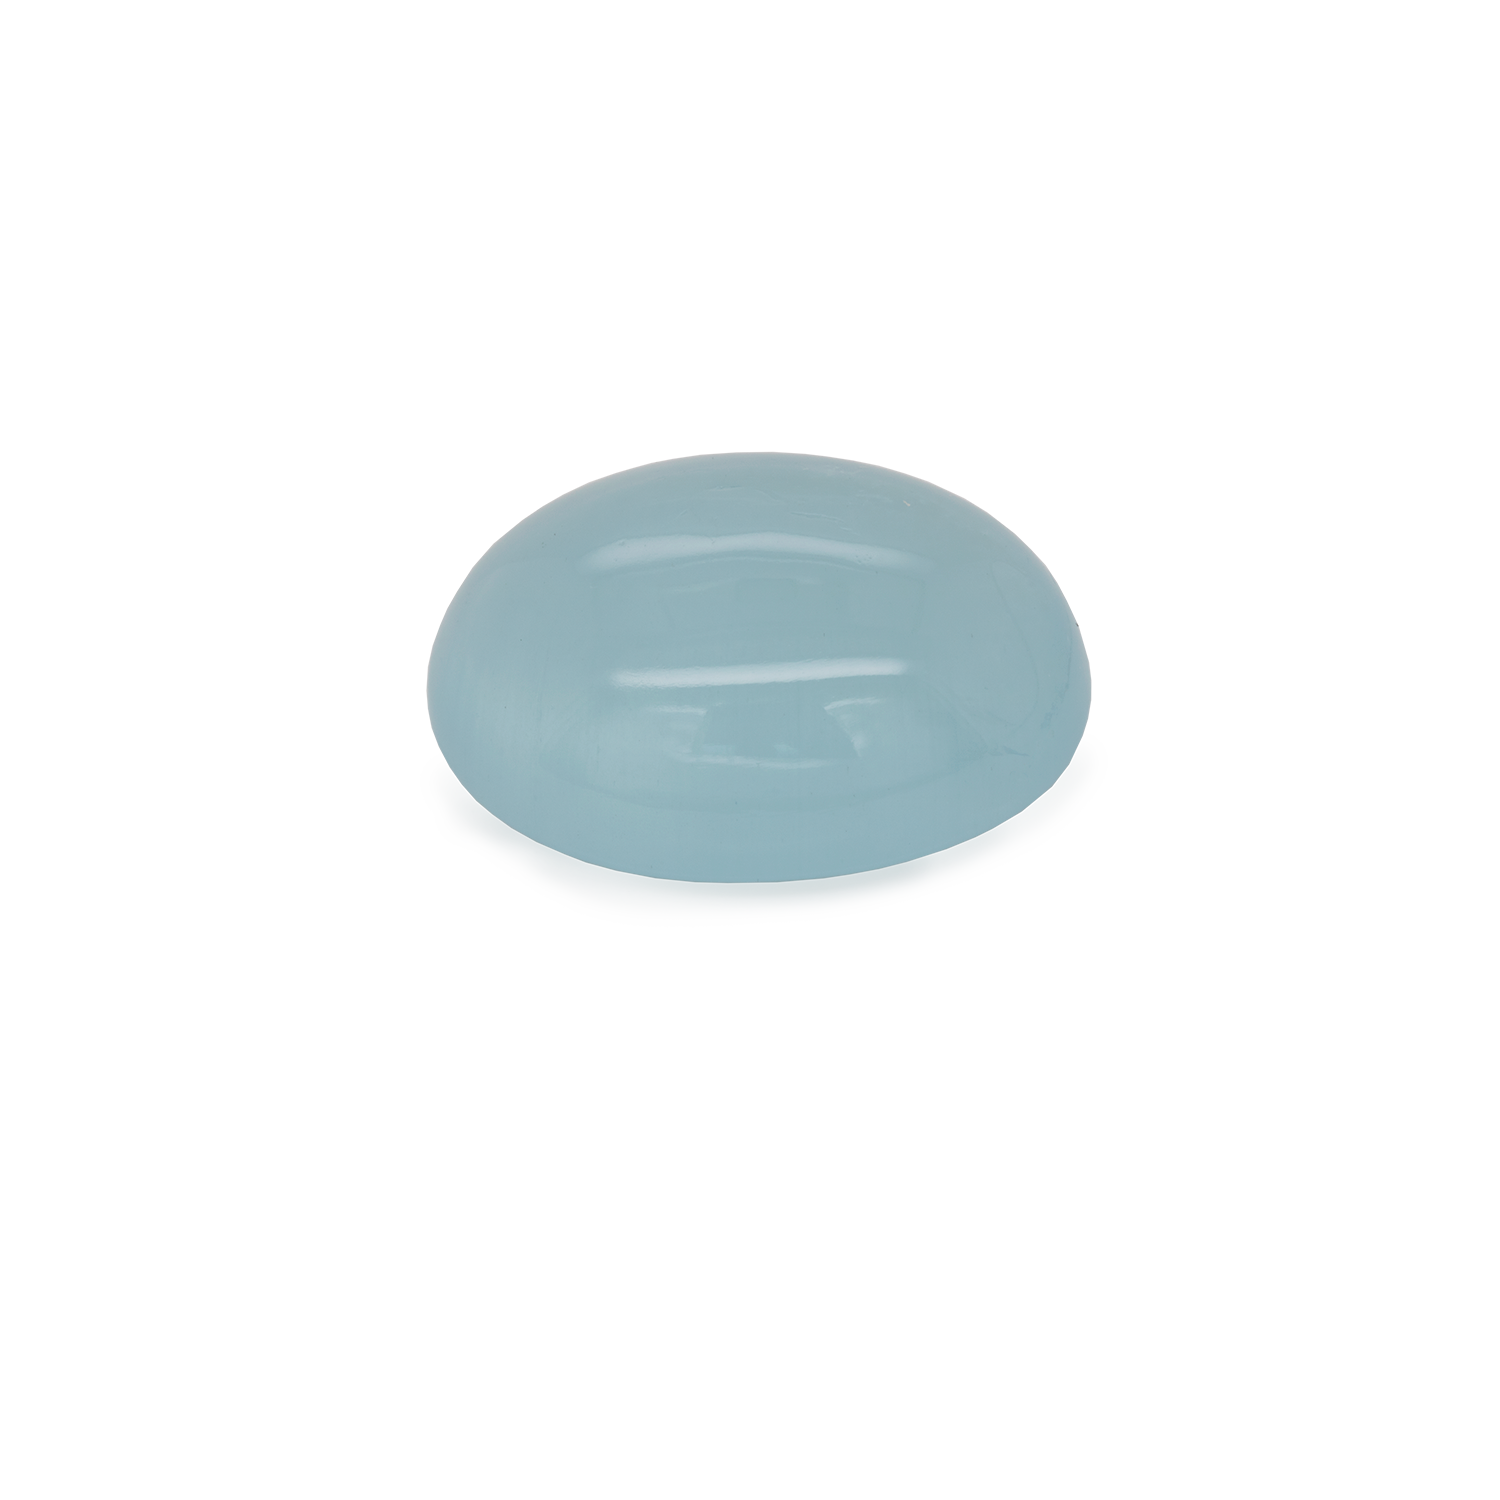 Aquamarin - A, oval, 20x15,1 mm, 18,51 cts, Nr. A92001